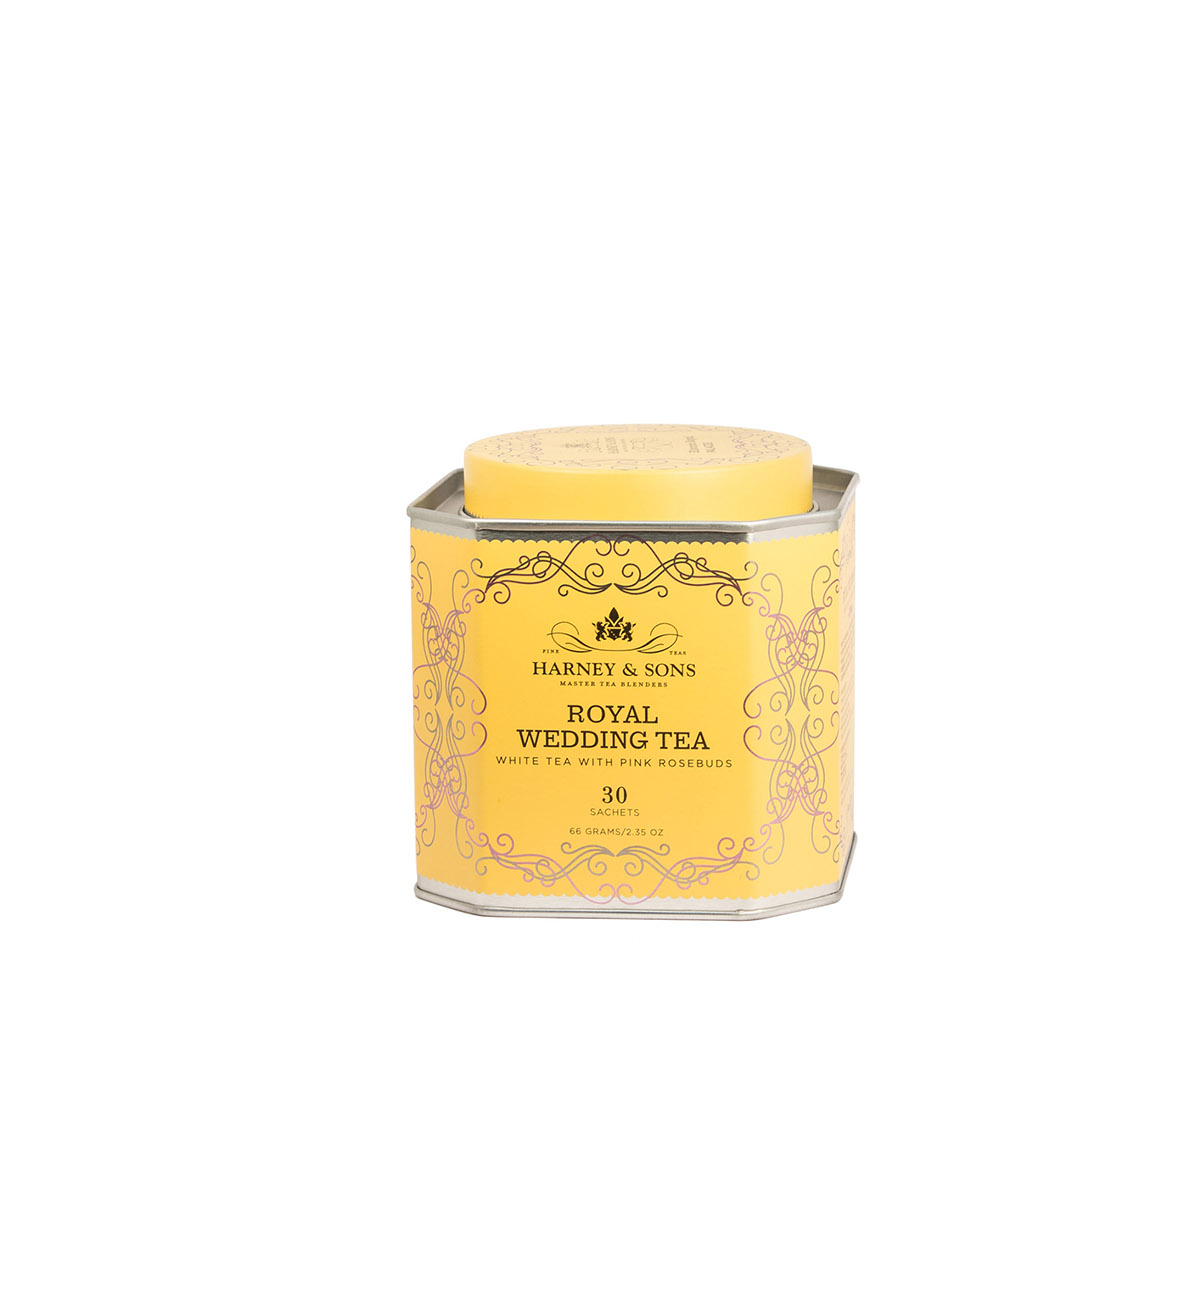 Harney & Sons Royal Wedding Tea